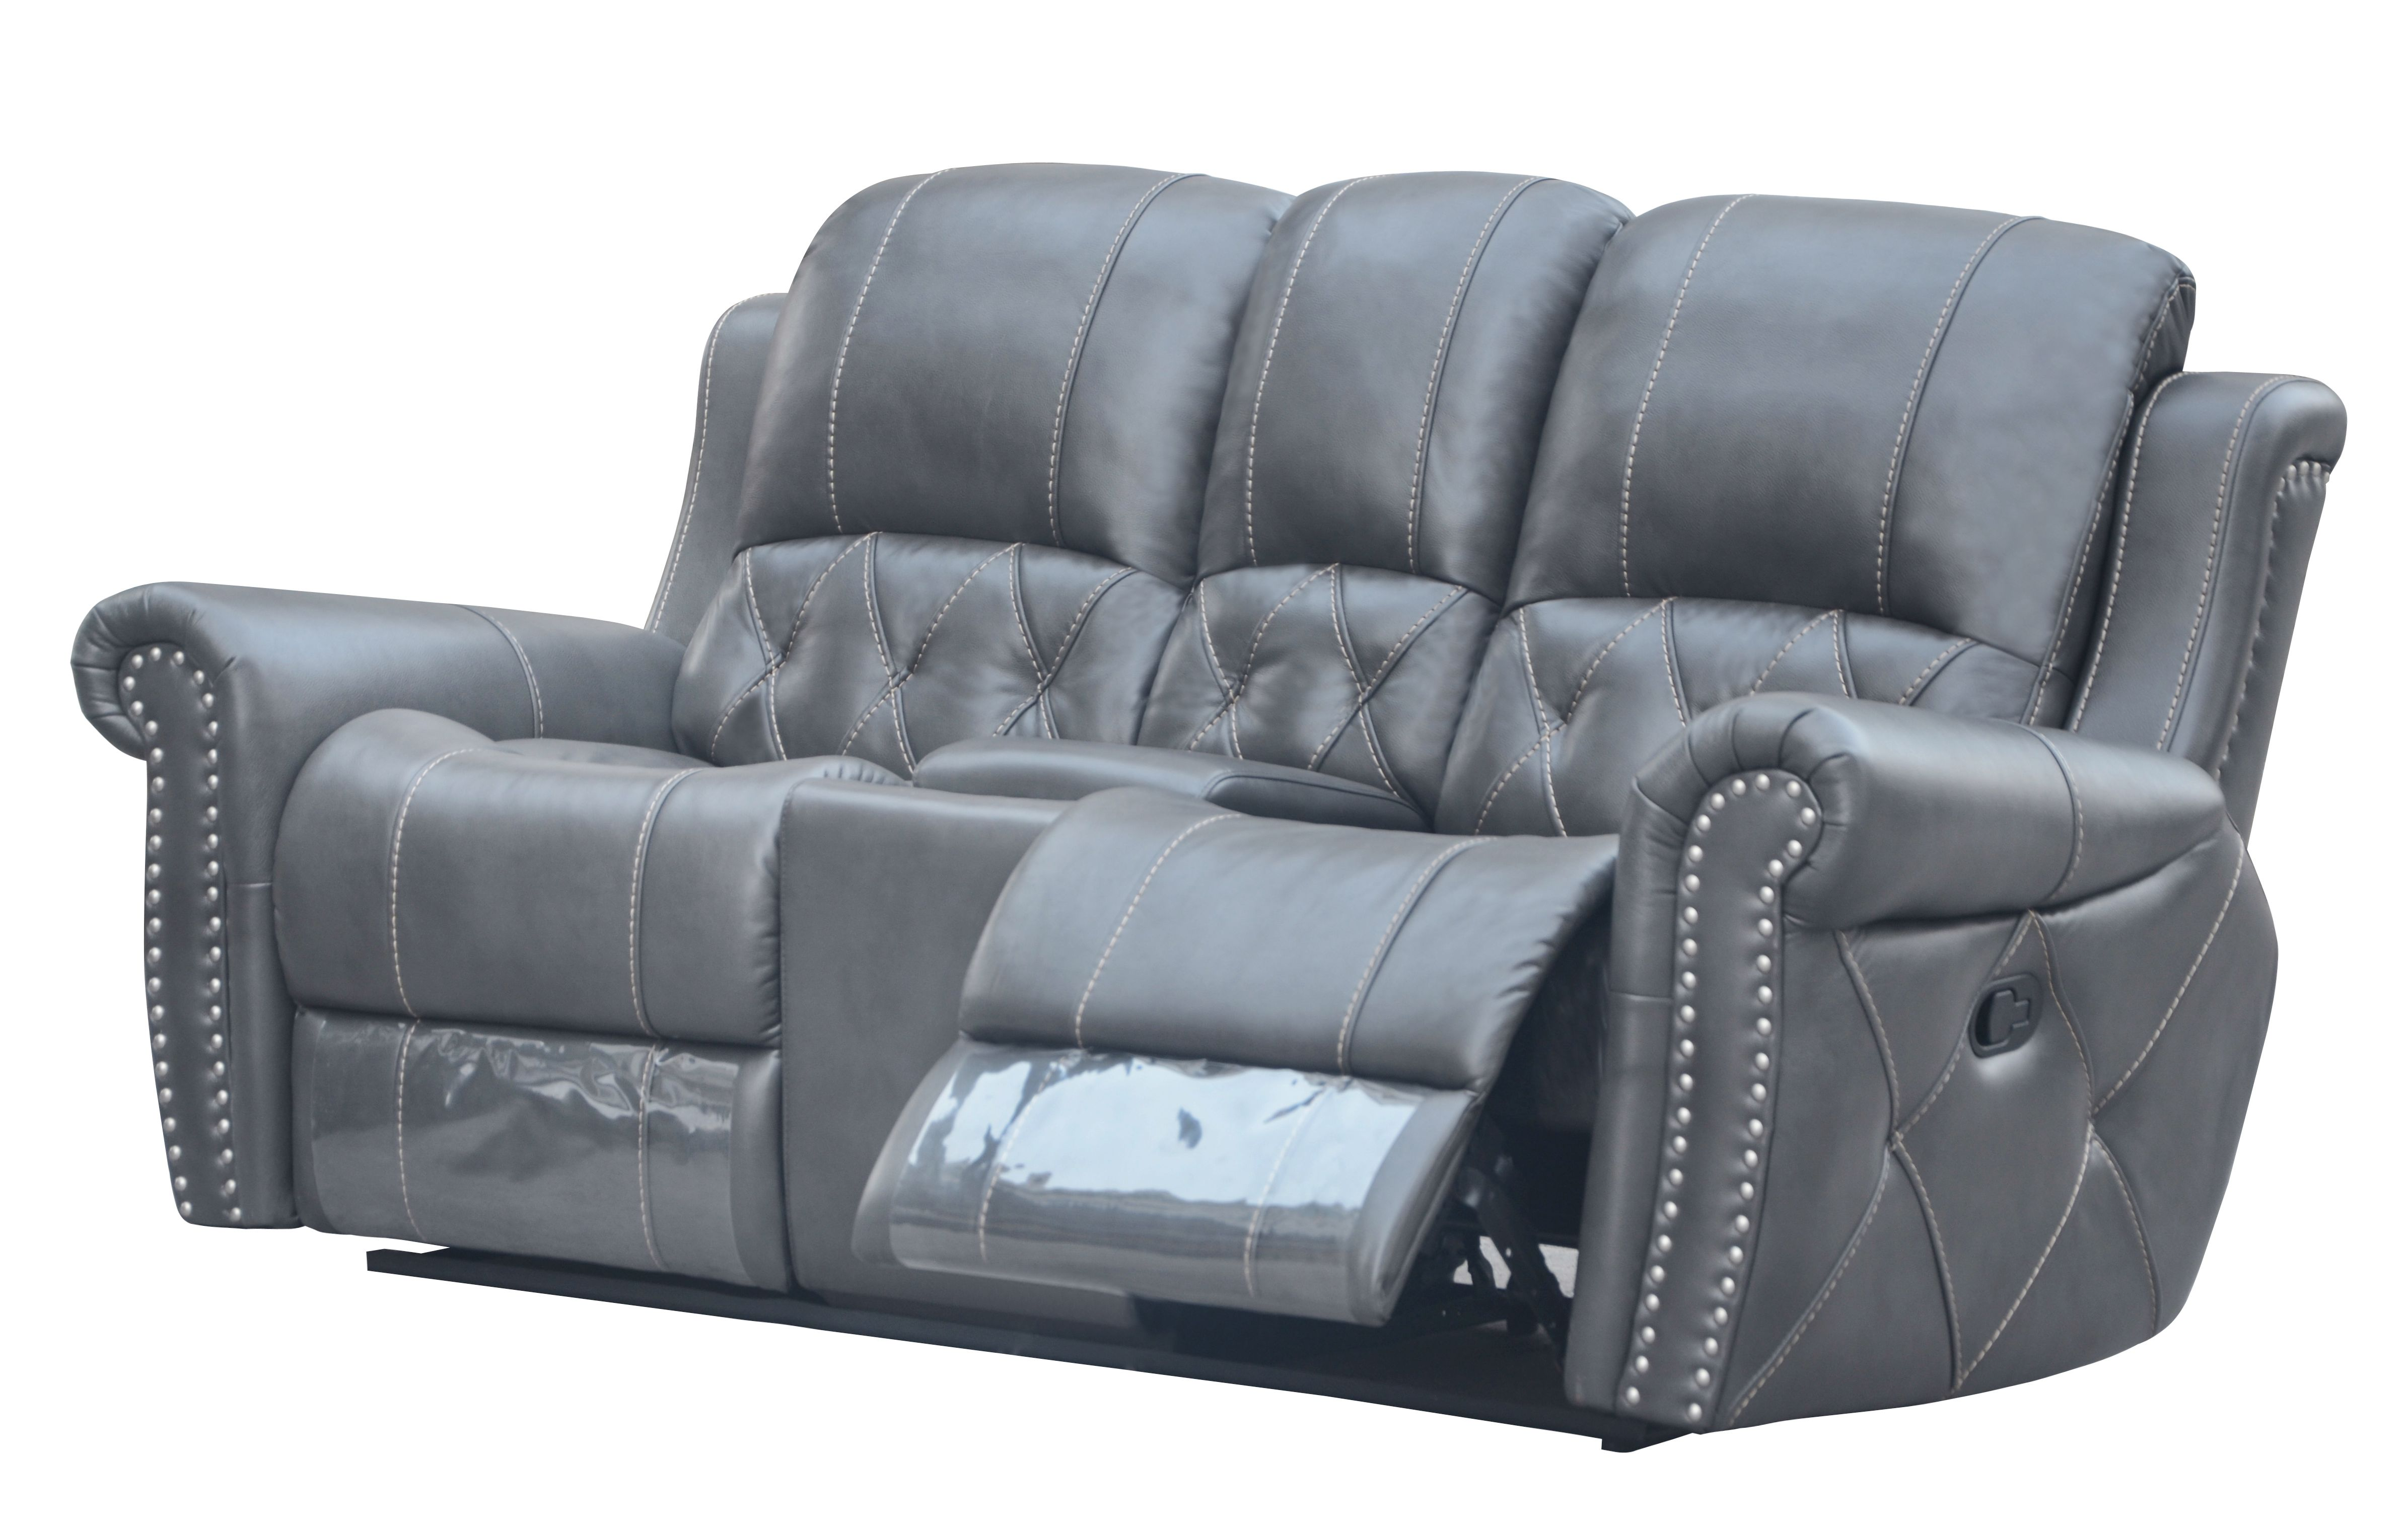 htm jacinta acme reclining furniture velvet coleman gray from loveseat